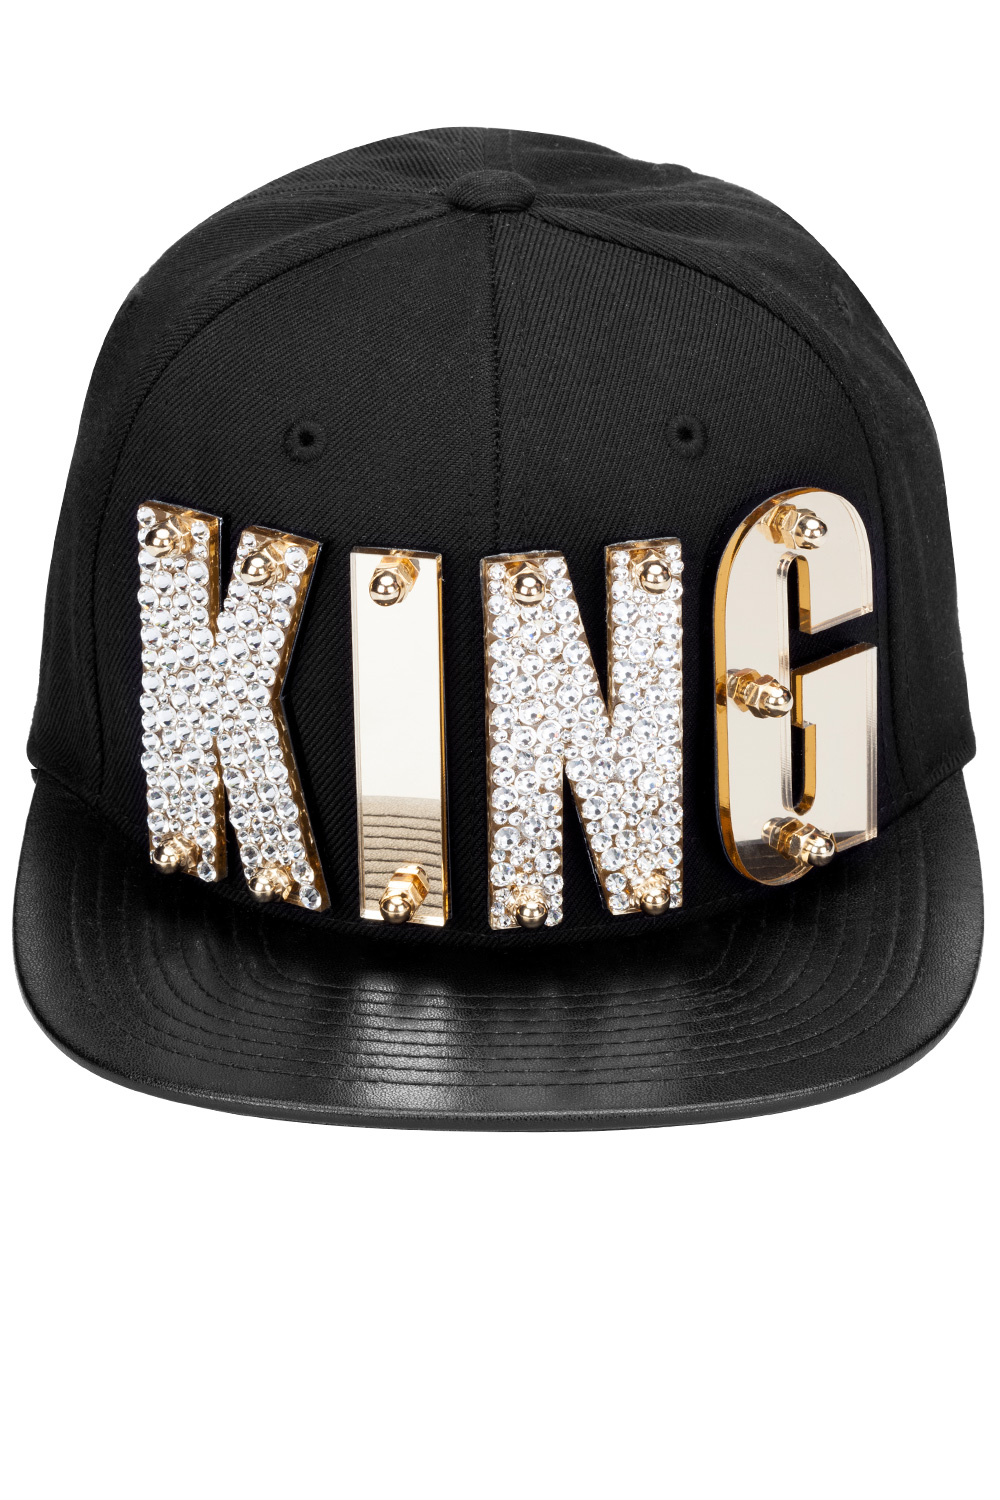 rich kids king cap black 365ist